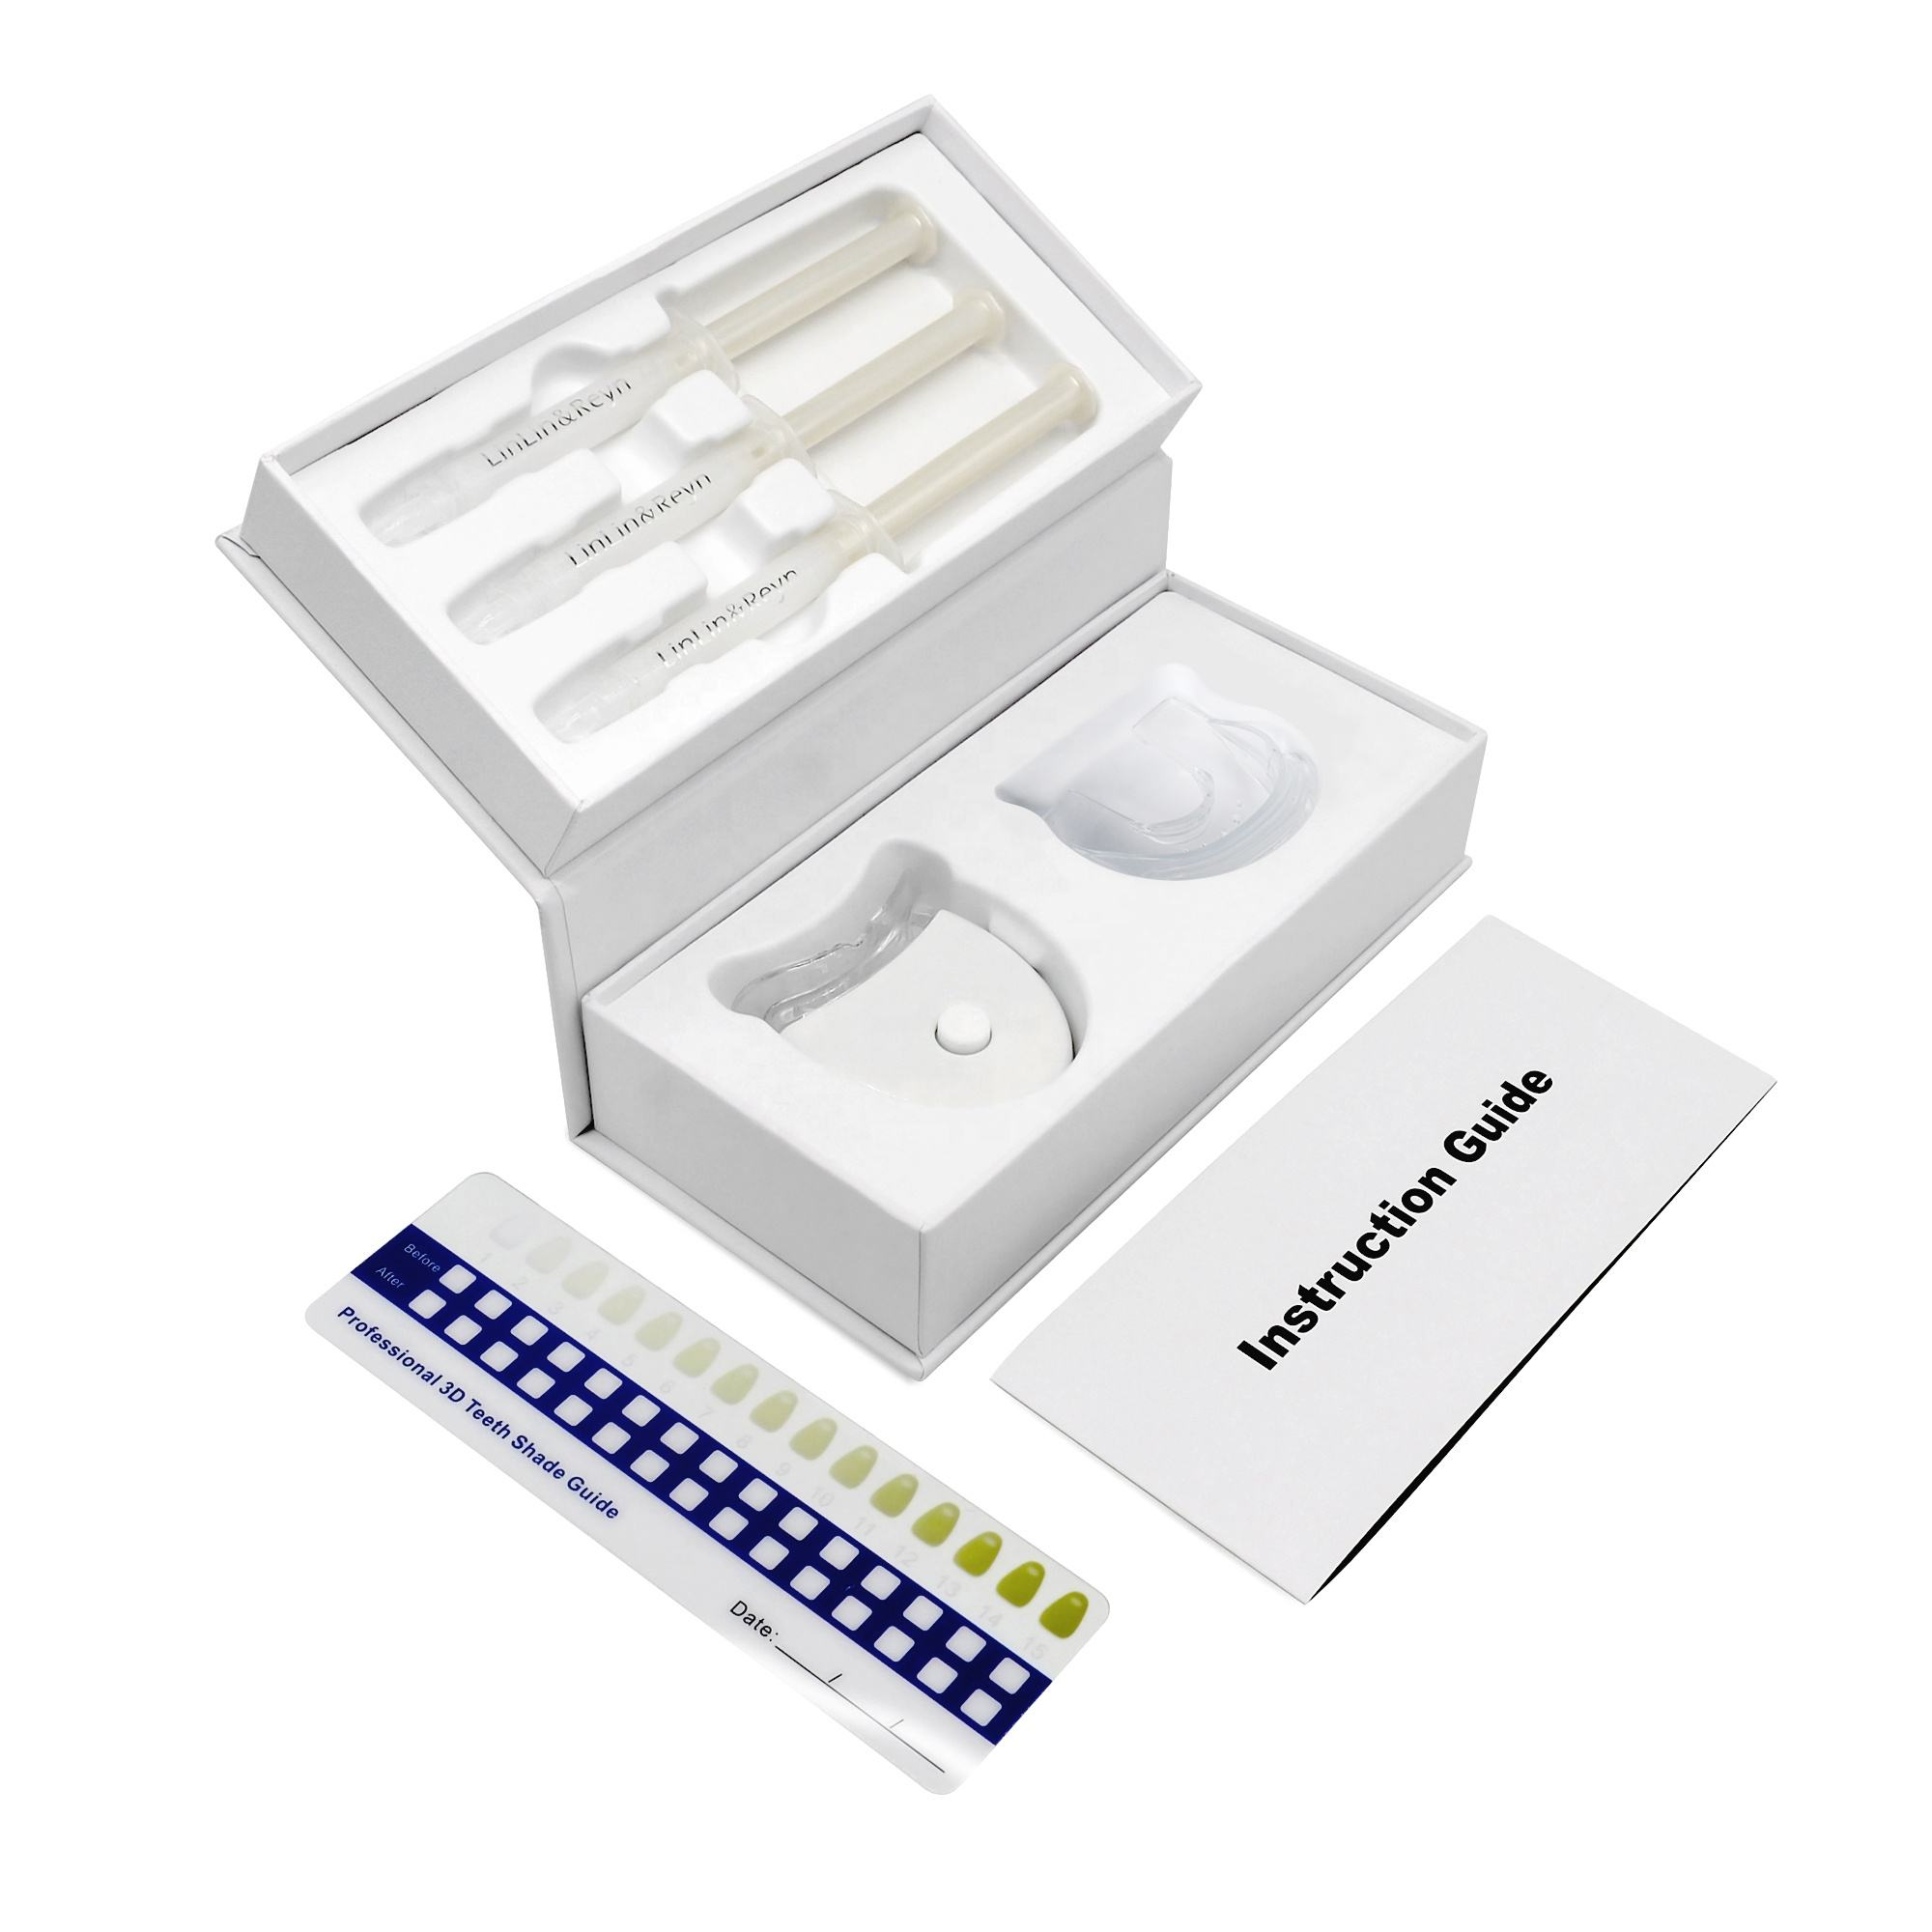 2020 Luxury Wholesale Teeth Whitening Kits Private Logo